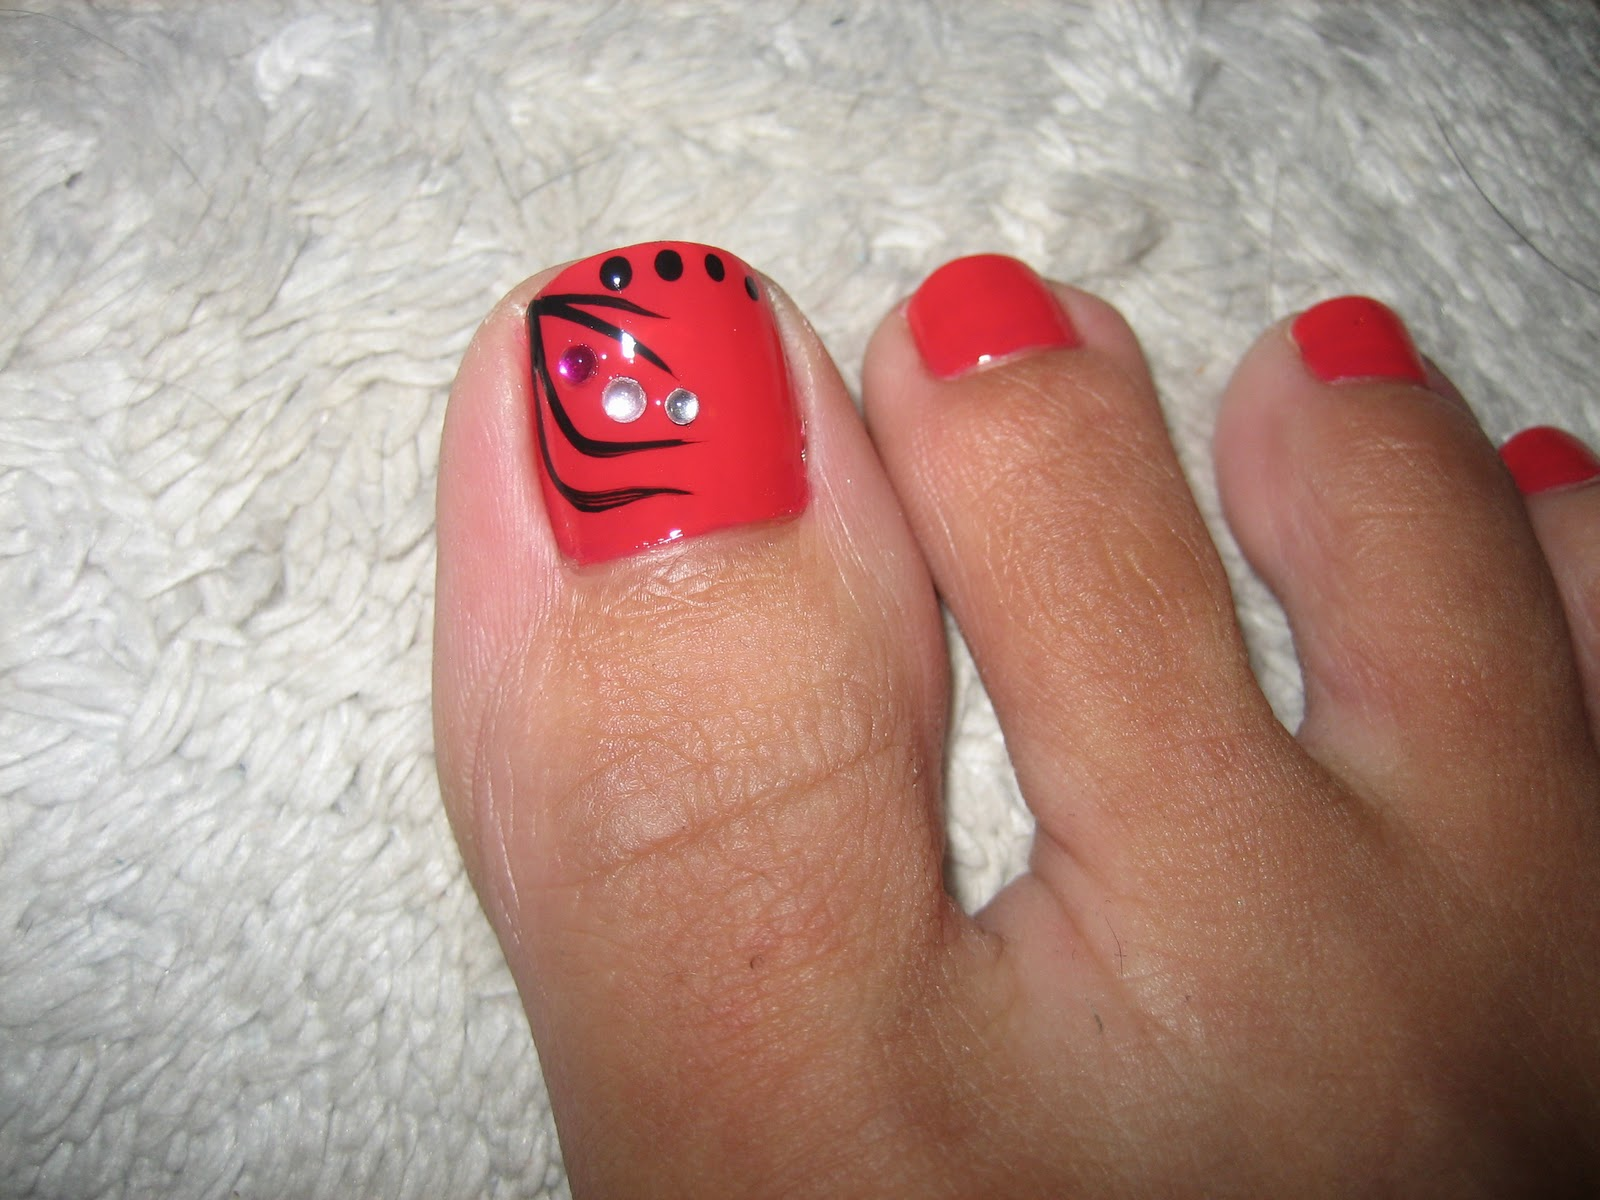 Awesome Nails By Nicole: Toes of the Day!